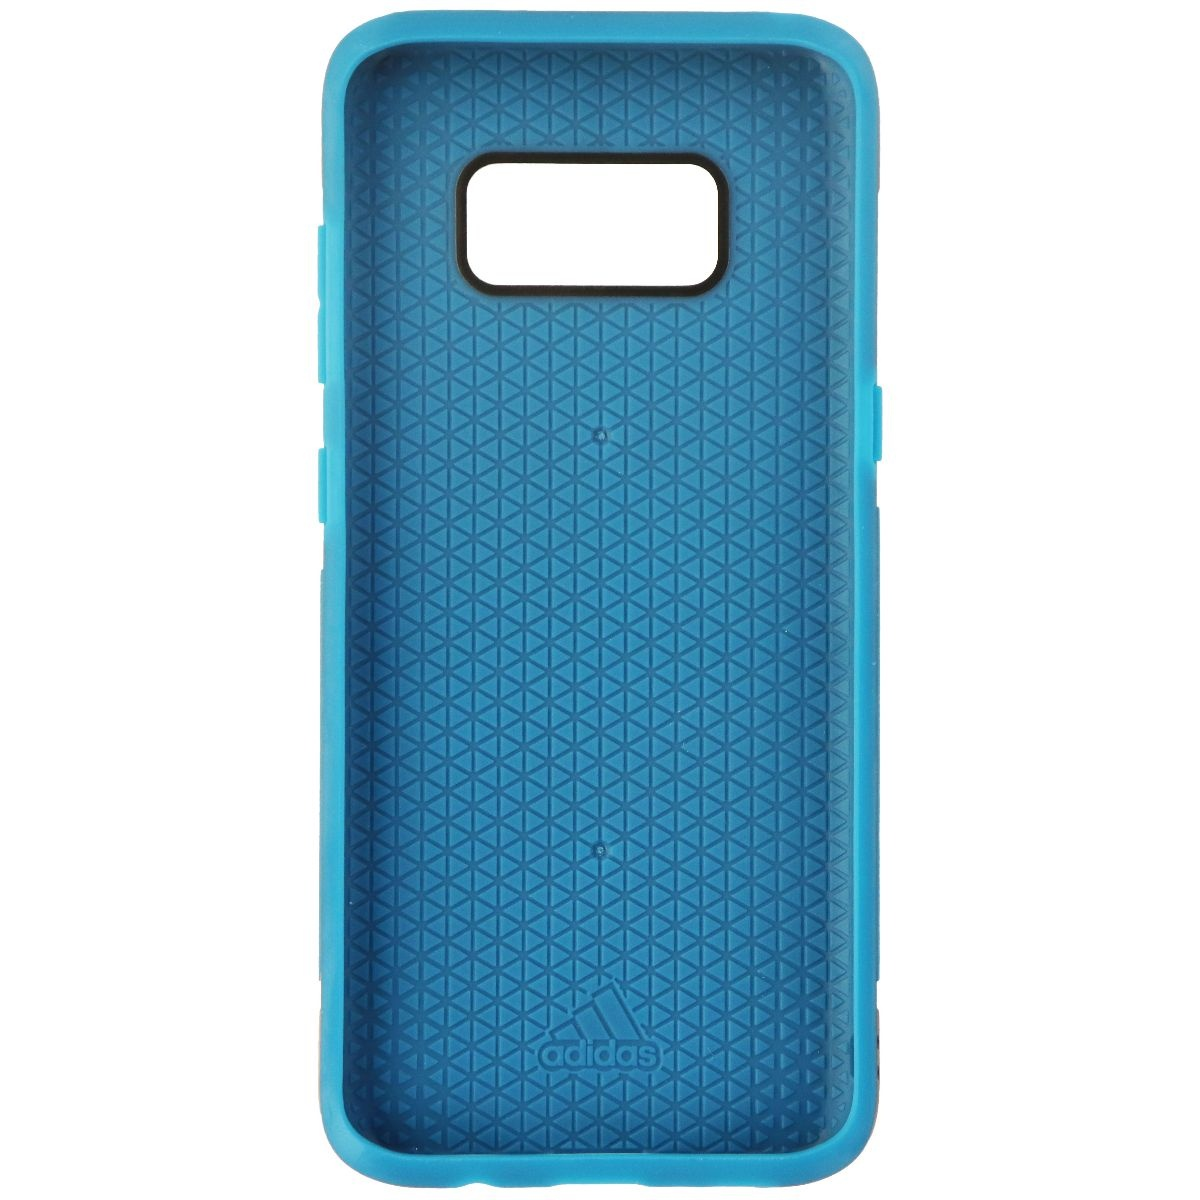 Details about Adidas Solo Case for Samsung Galaxy S8 Blue